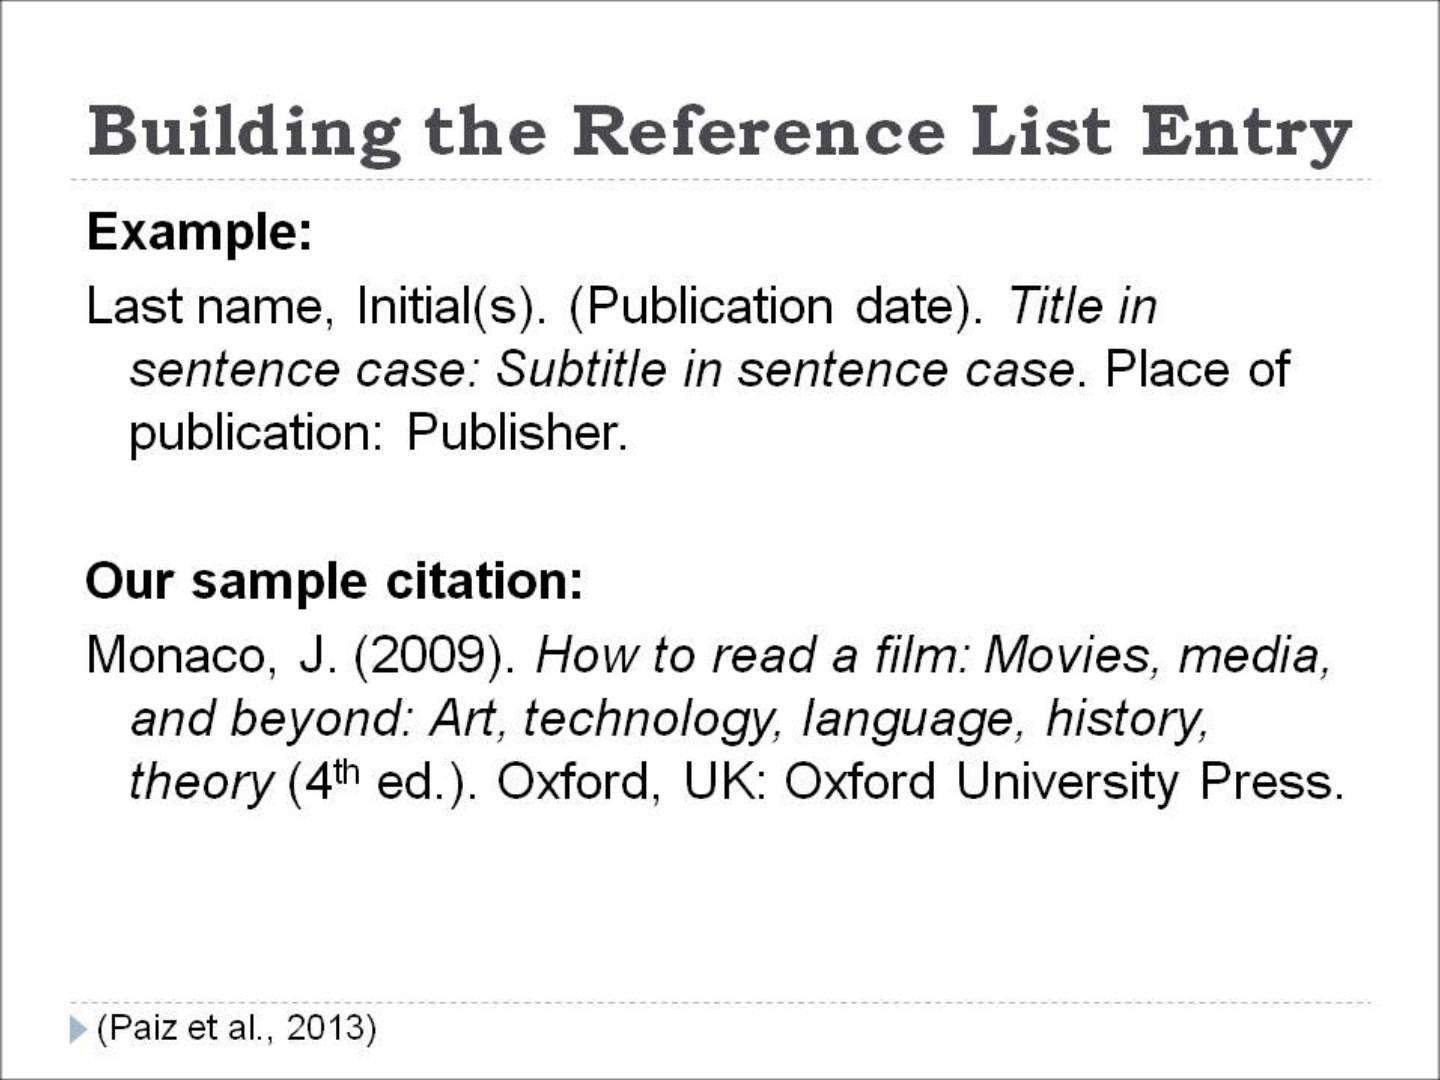 Guide to Citing Sources